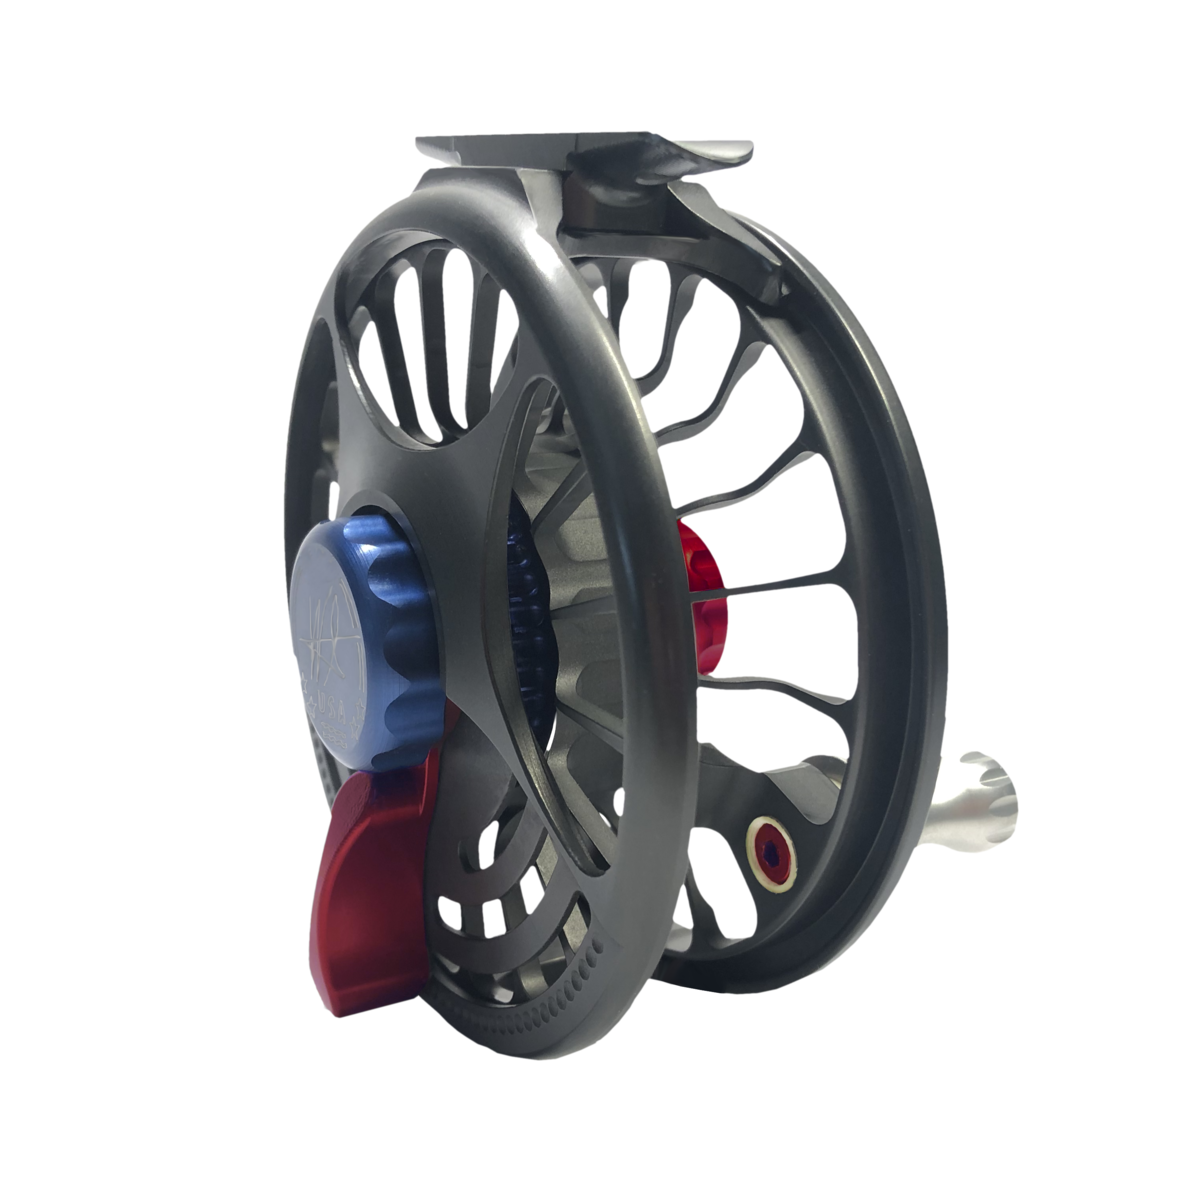 iCast winner of best new fly reel 2019, Best fly reel, saltwater fly reels, fly fishing salt, skinny water culture, Lever drag fly reel, lightweight fly reel,